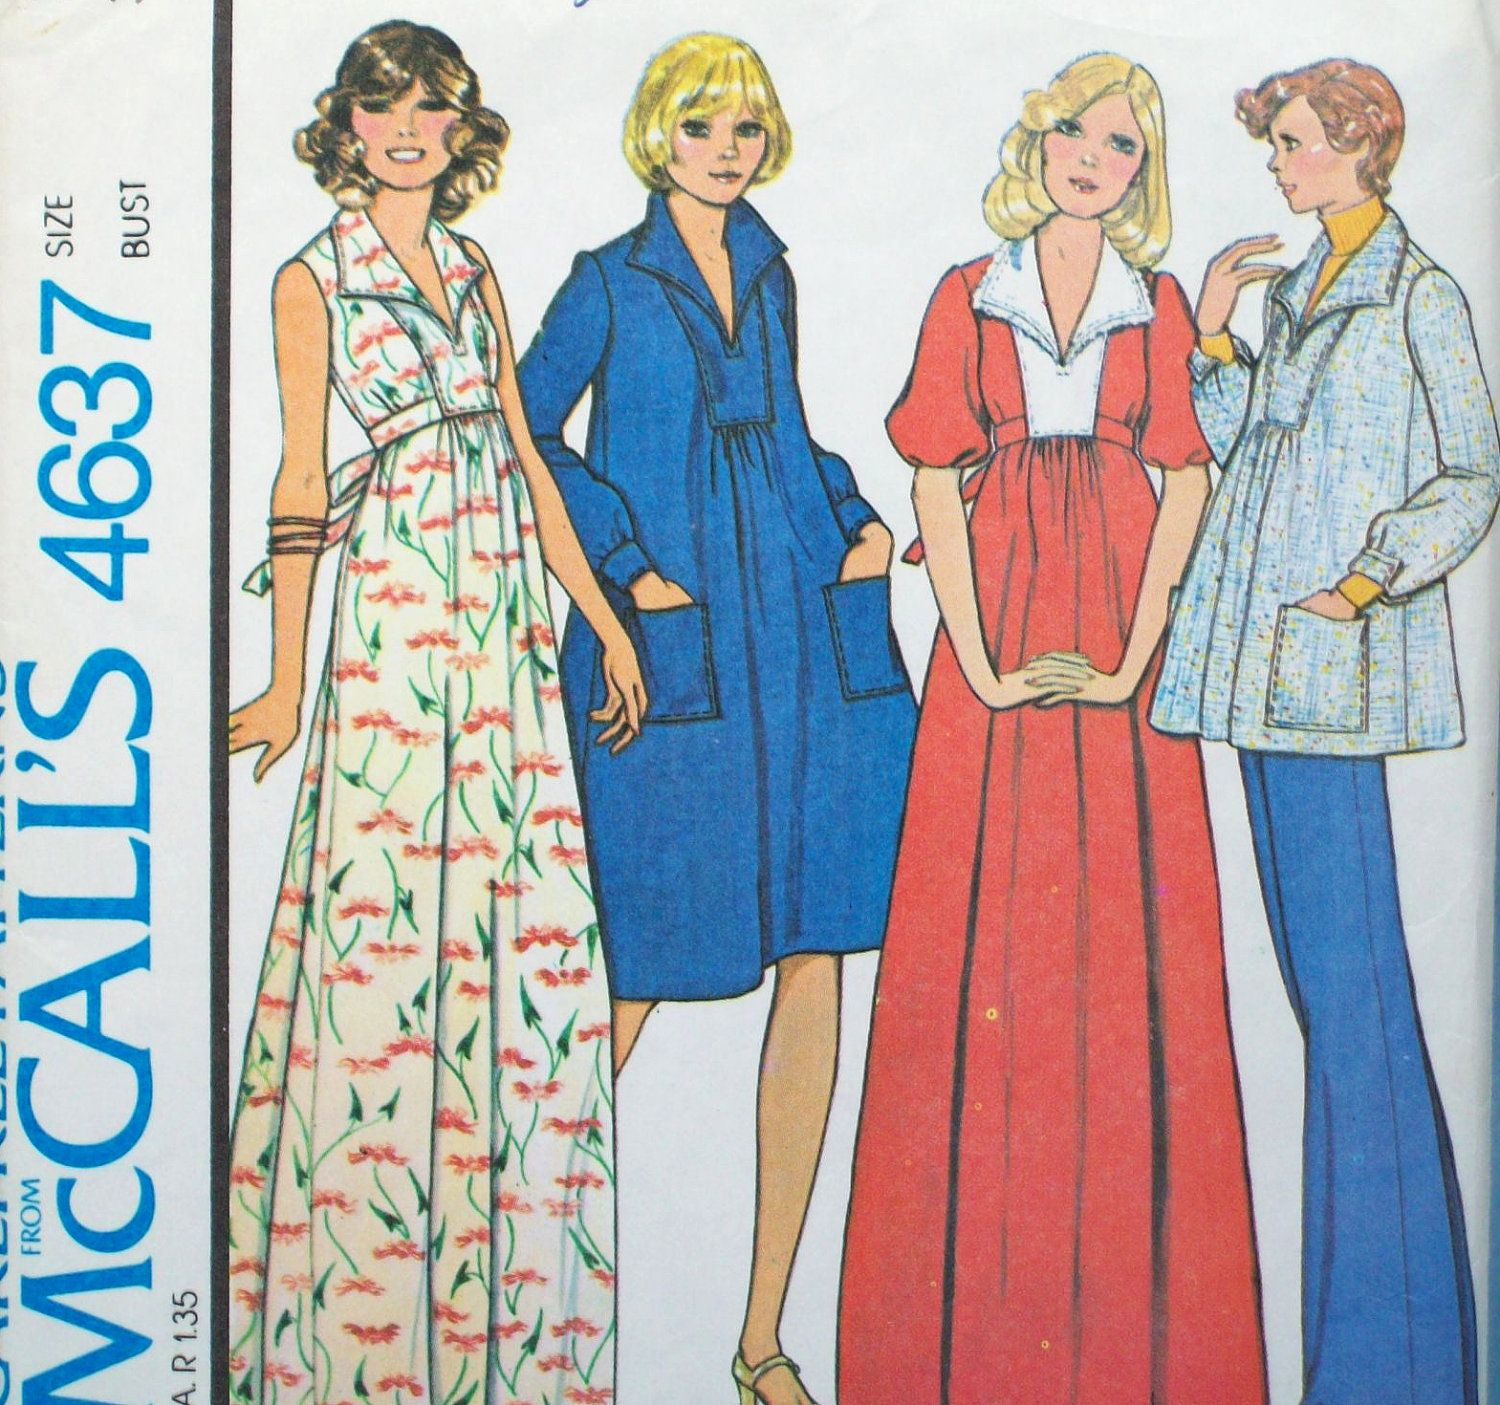 Vintage 1970s maternity sewing pattern mccalls 4637 maternity vintage 1970s maternity sewing pattern mccalls 4637 maternity dress or top and pants size 12 bust 34 uncut ombrellifo Images